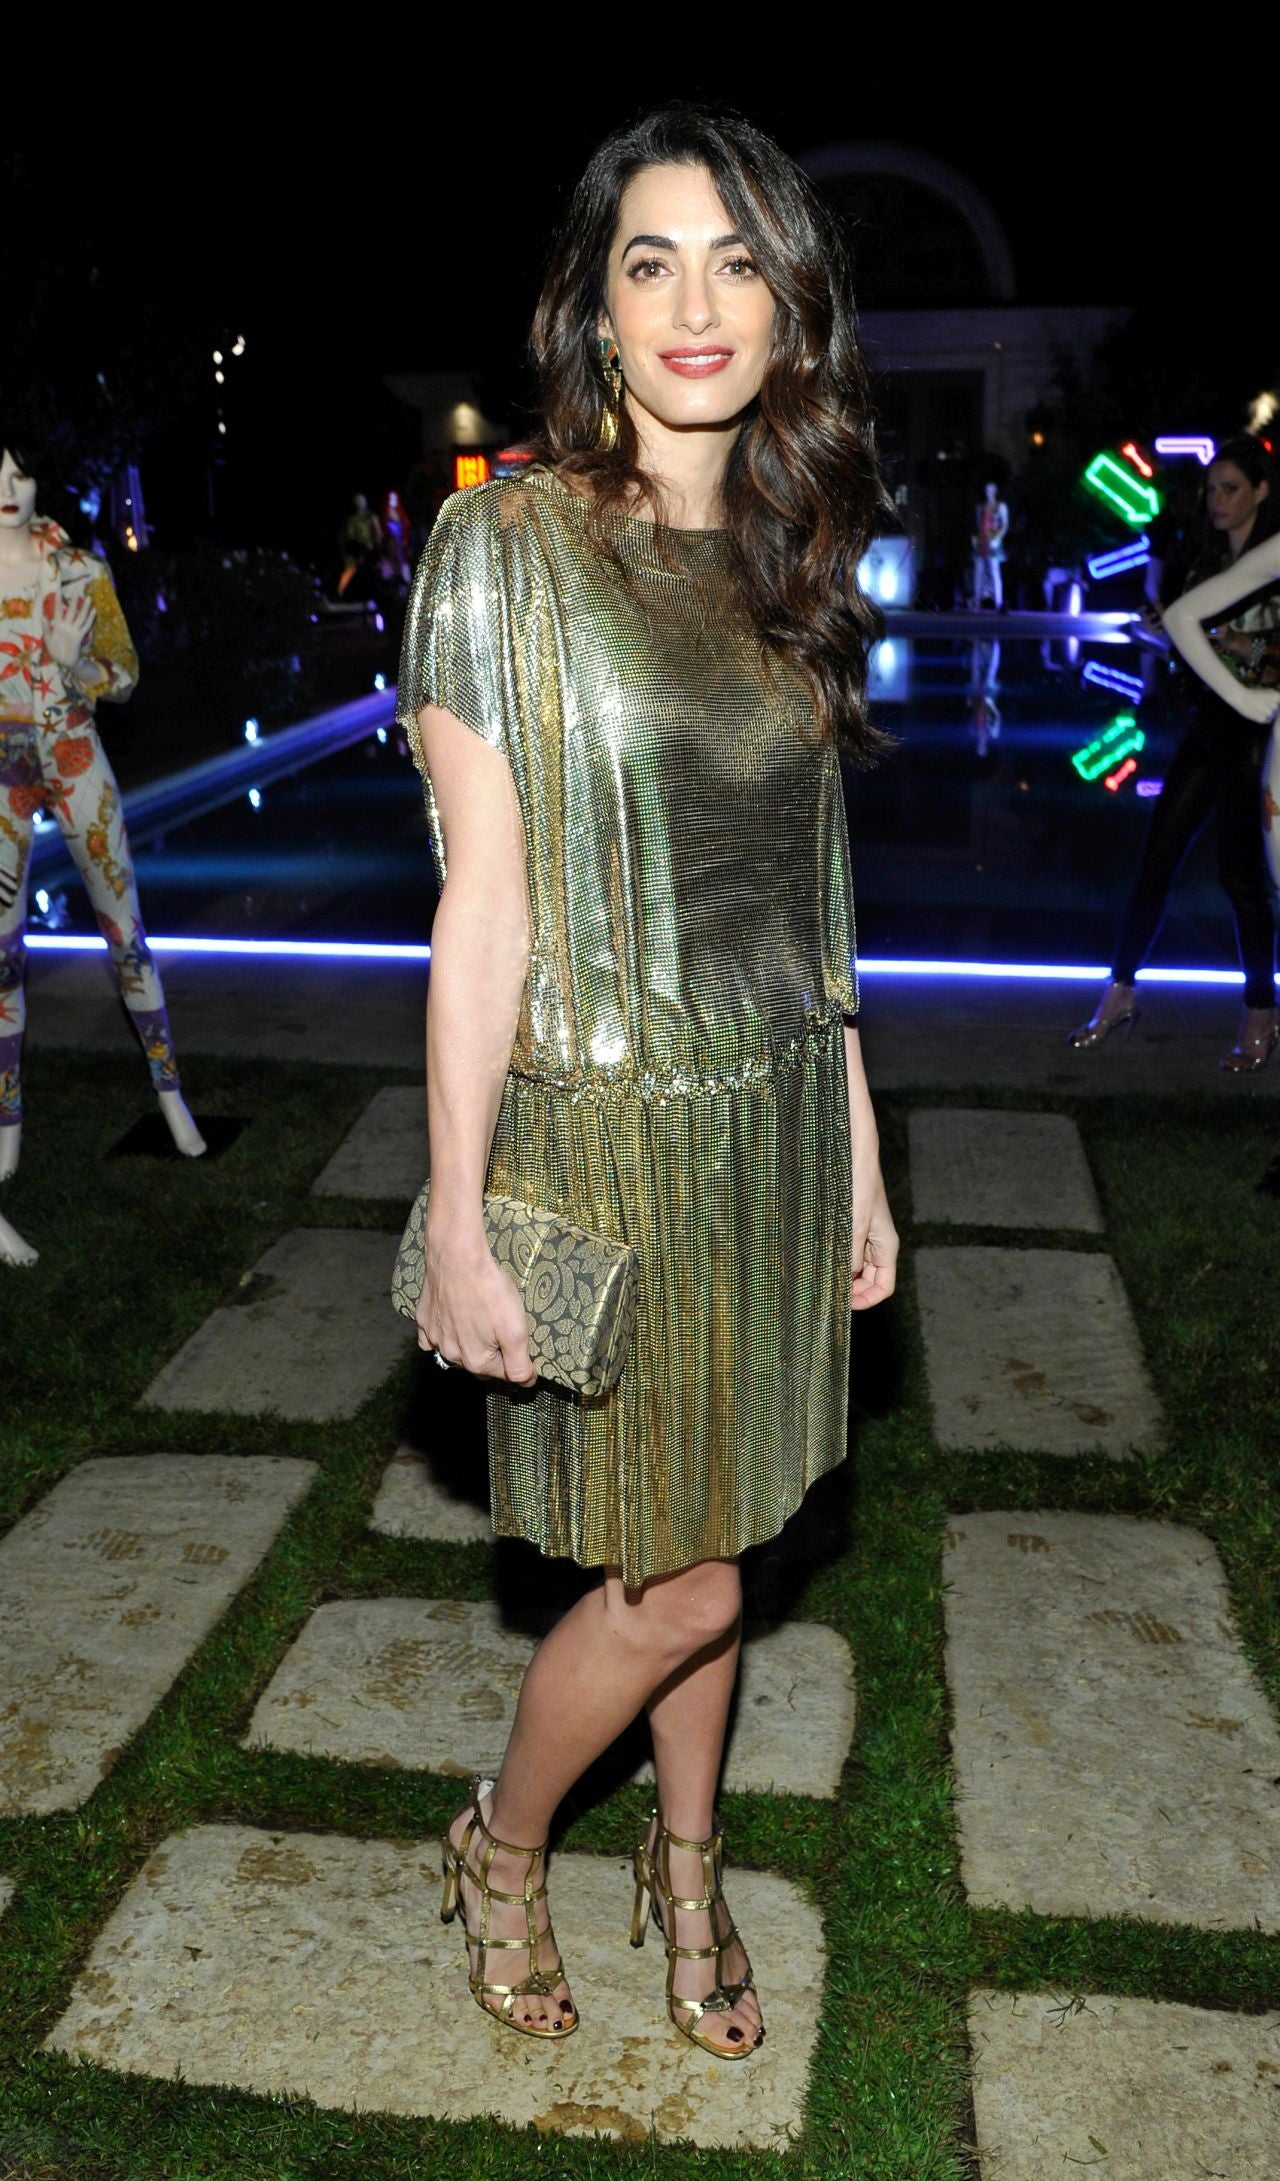 Amal Clooney Shimmers in Metallic Gold Dress and Matching Heels -- See the Chic Look!